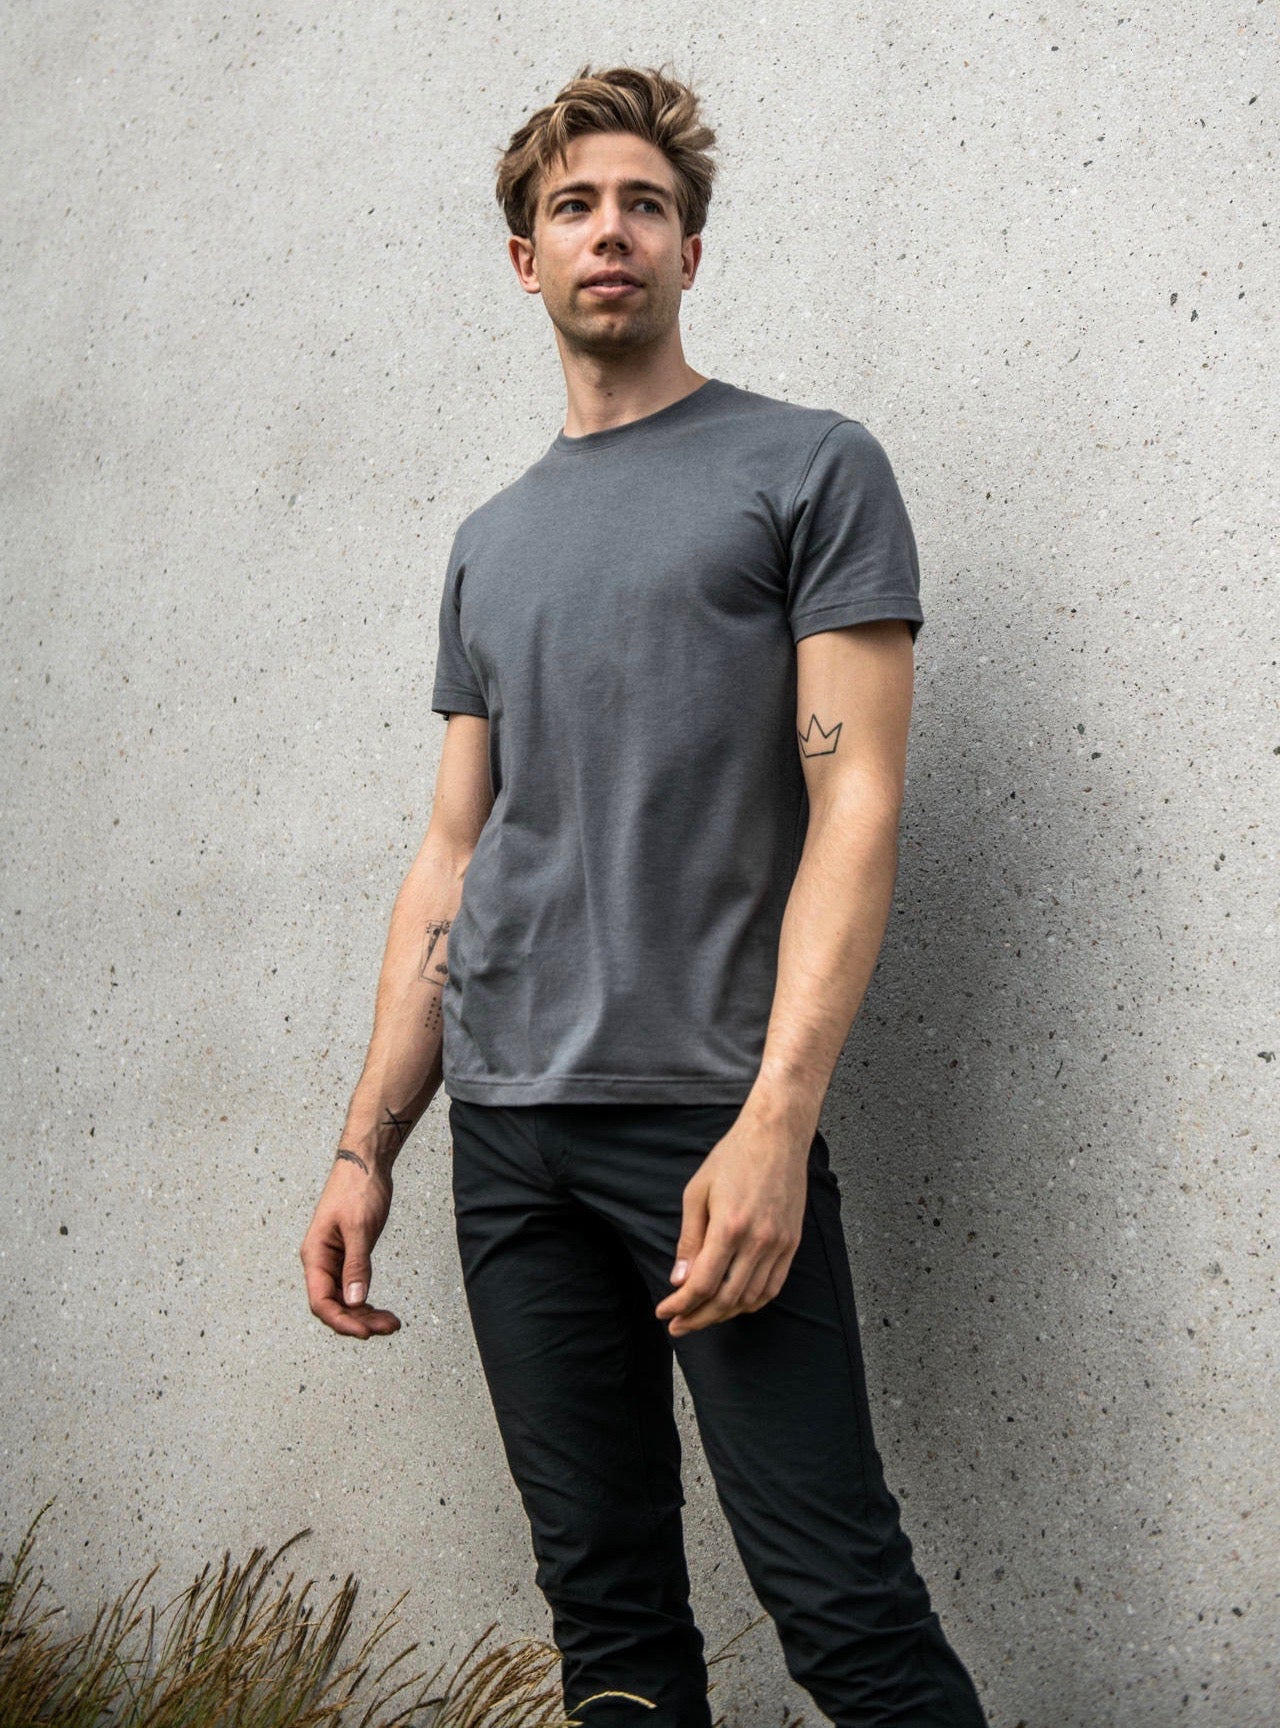 Western Rise X Cotton Tee